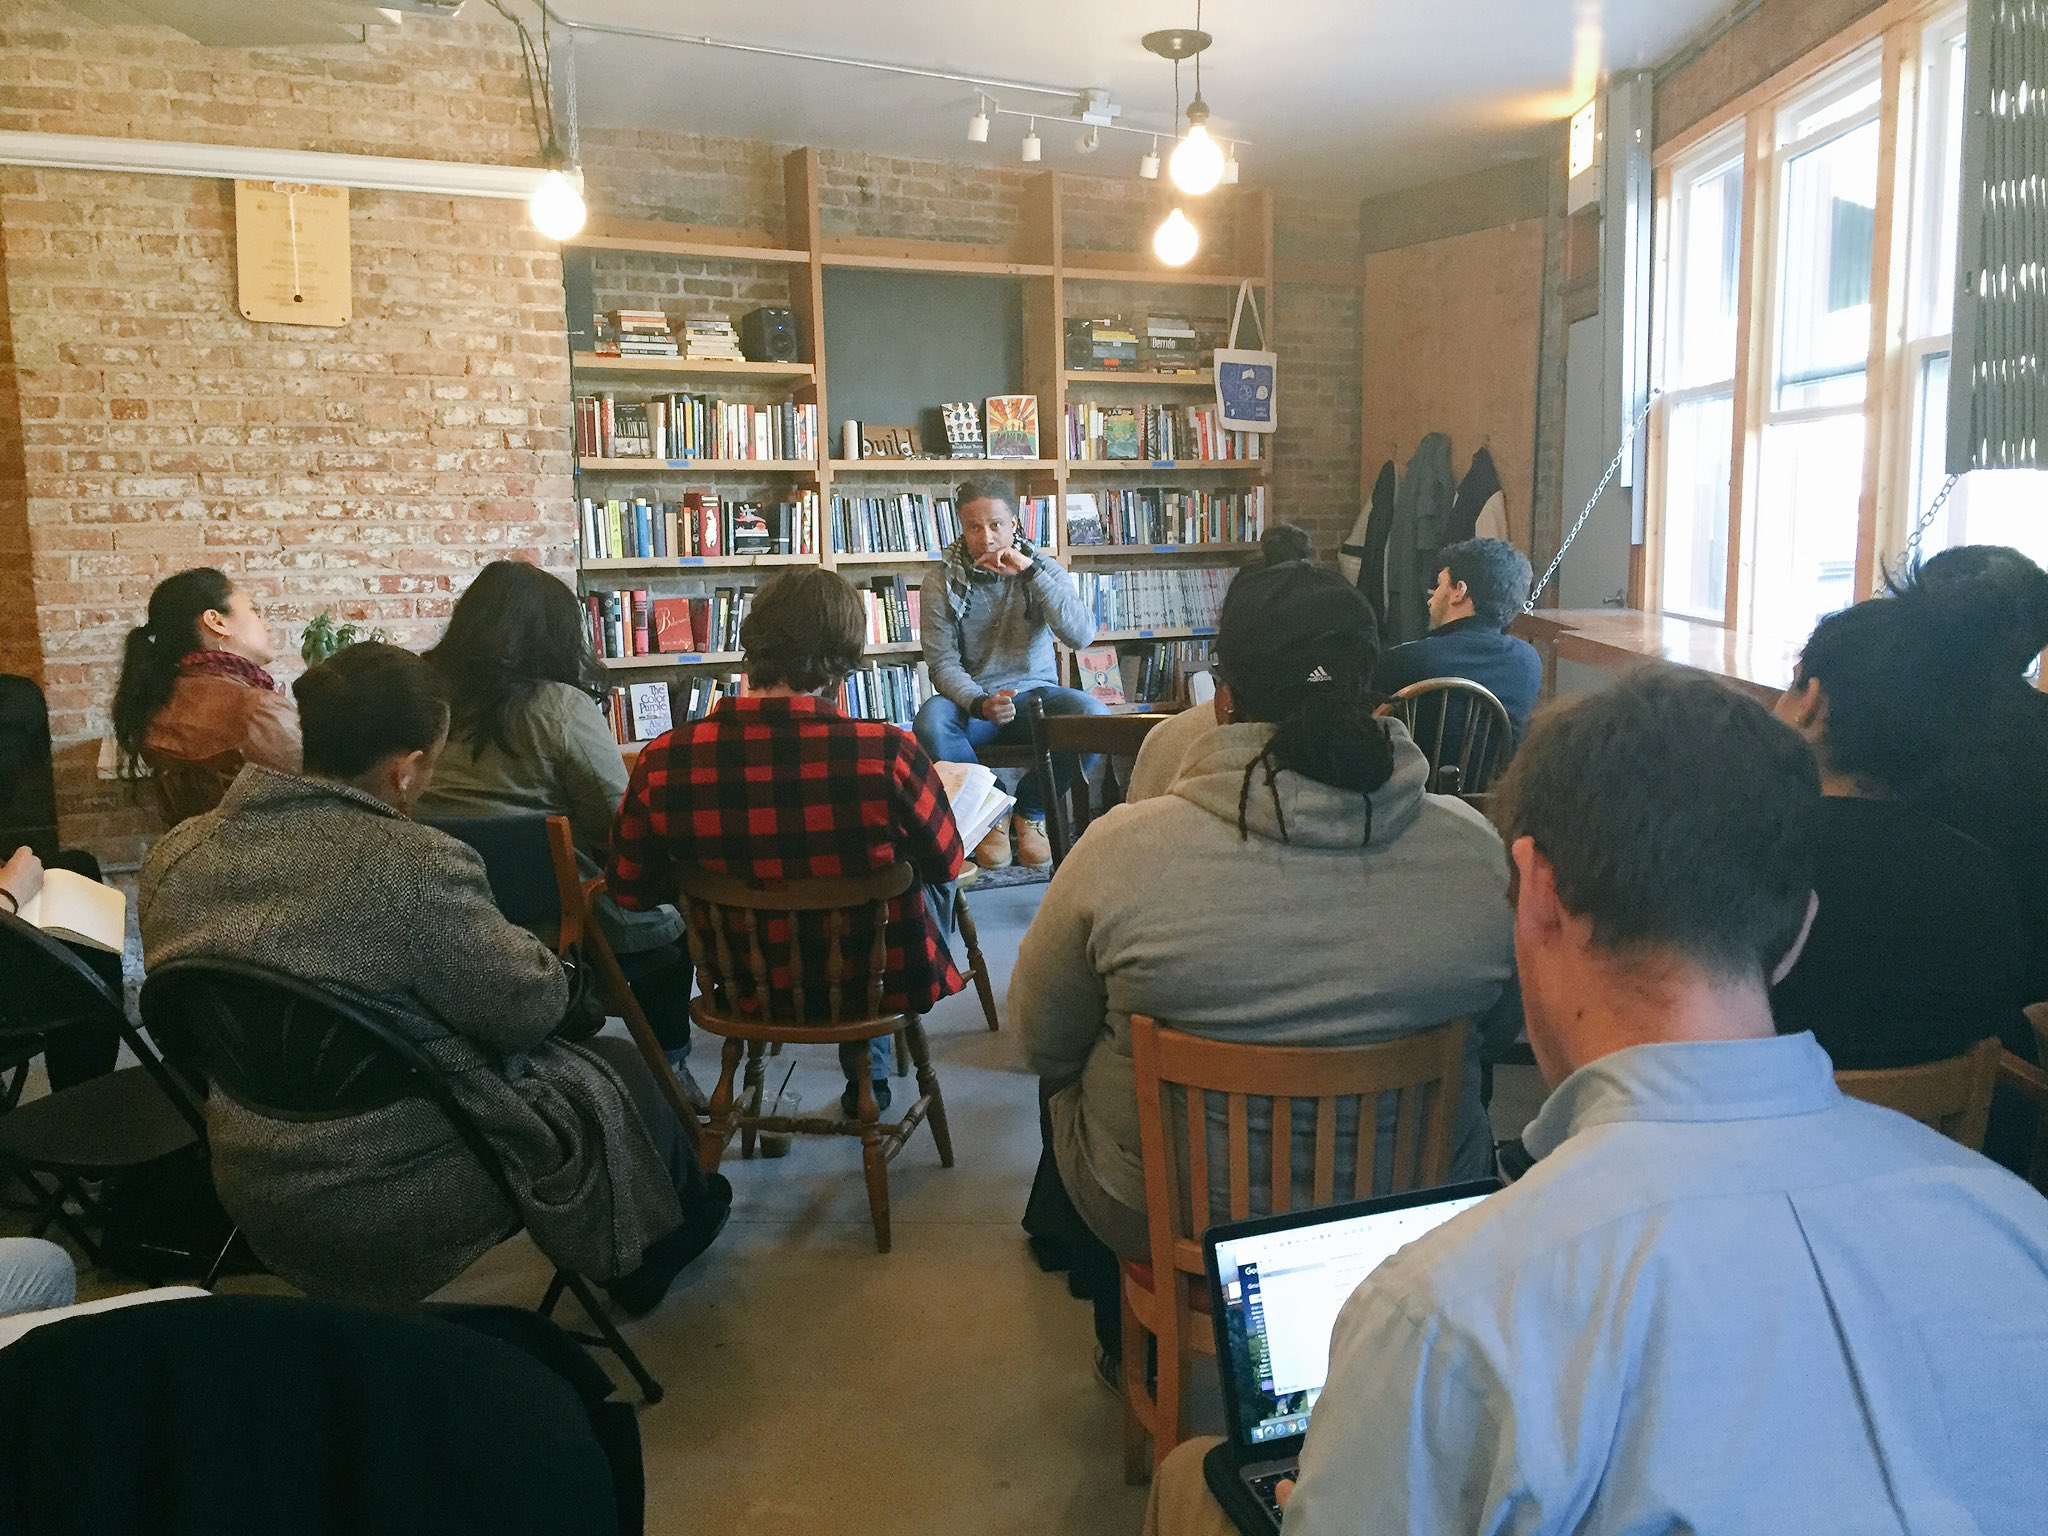 """We're at the #PublicNewsroom w/ Dr. David Stovall on schools, conflict, """"multi-layered lives and multi-layered articulations"""" in Chicago https://t.co/6vi2snyaH8"""